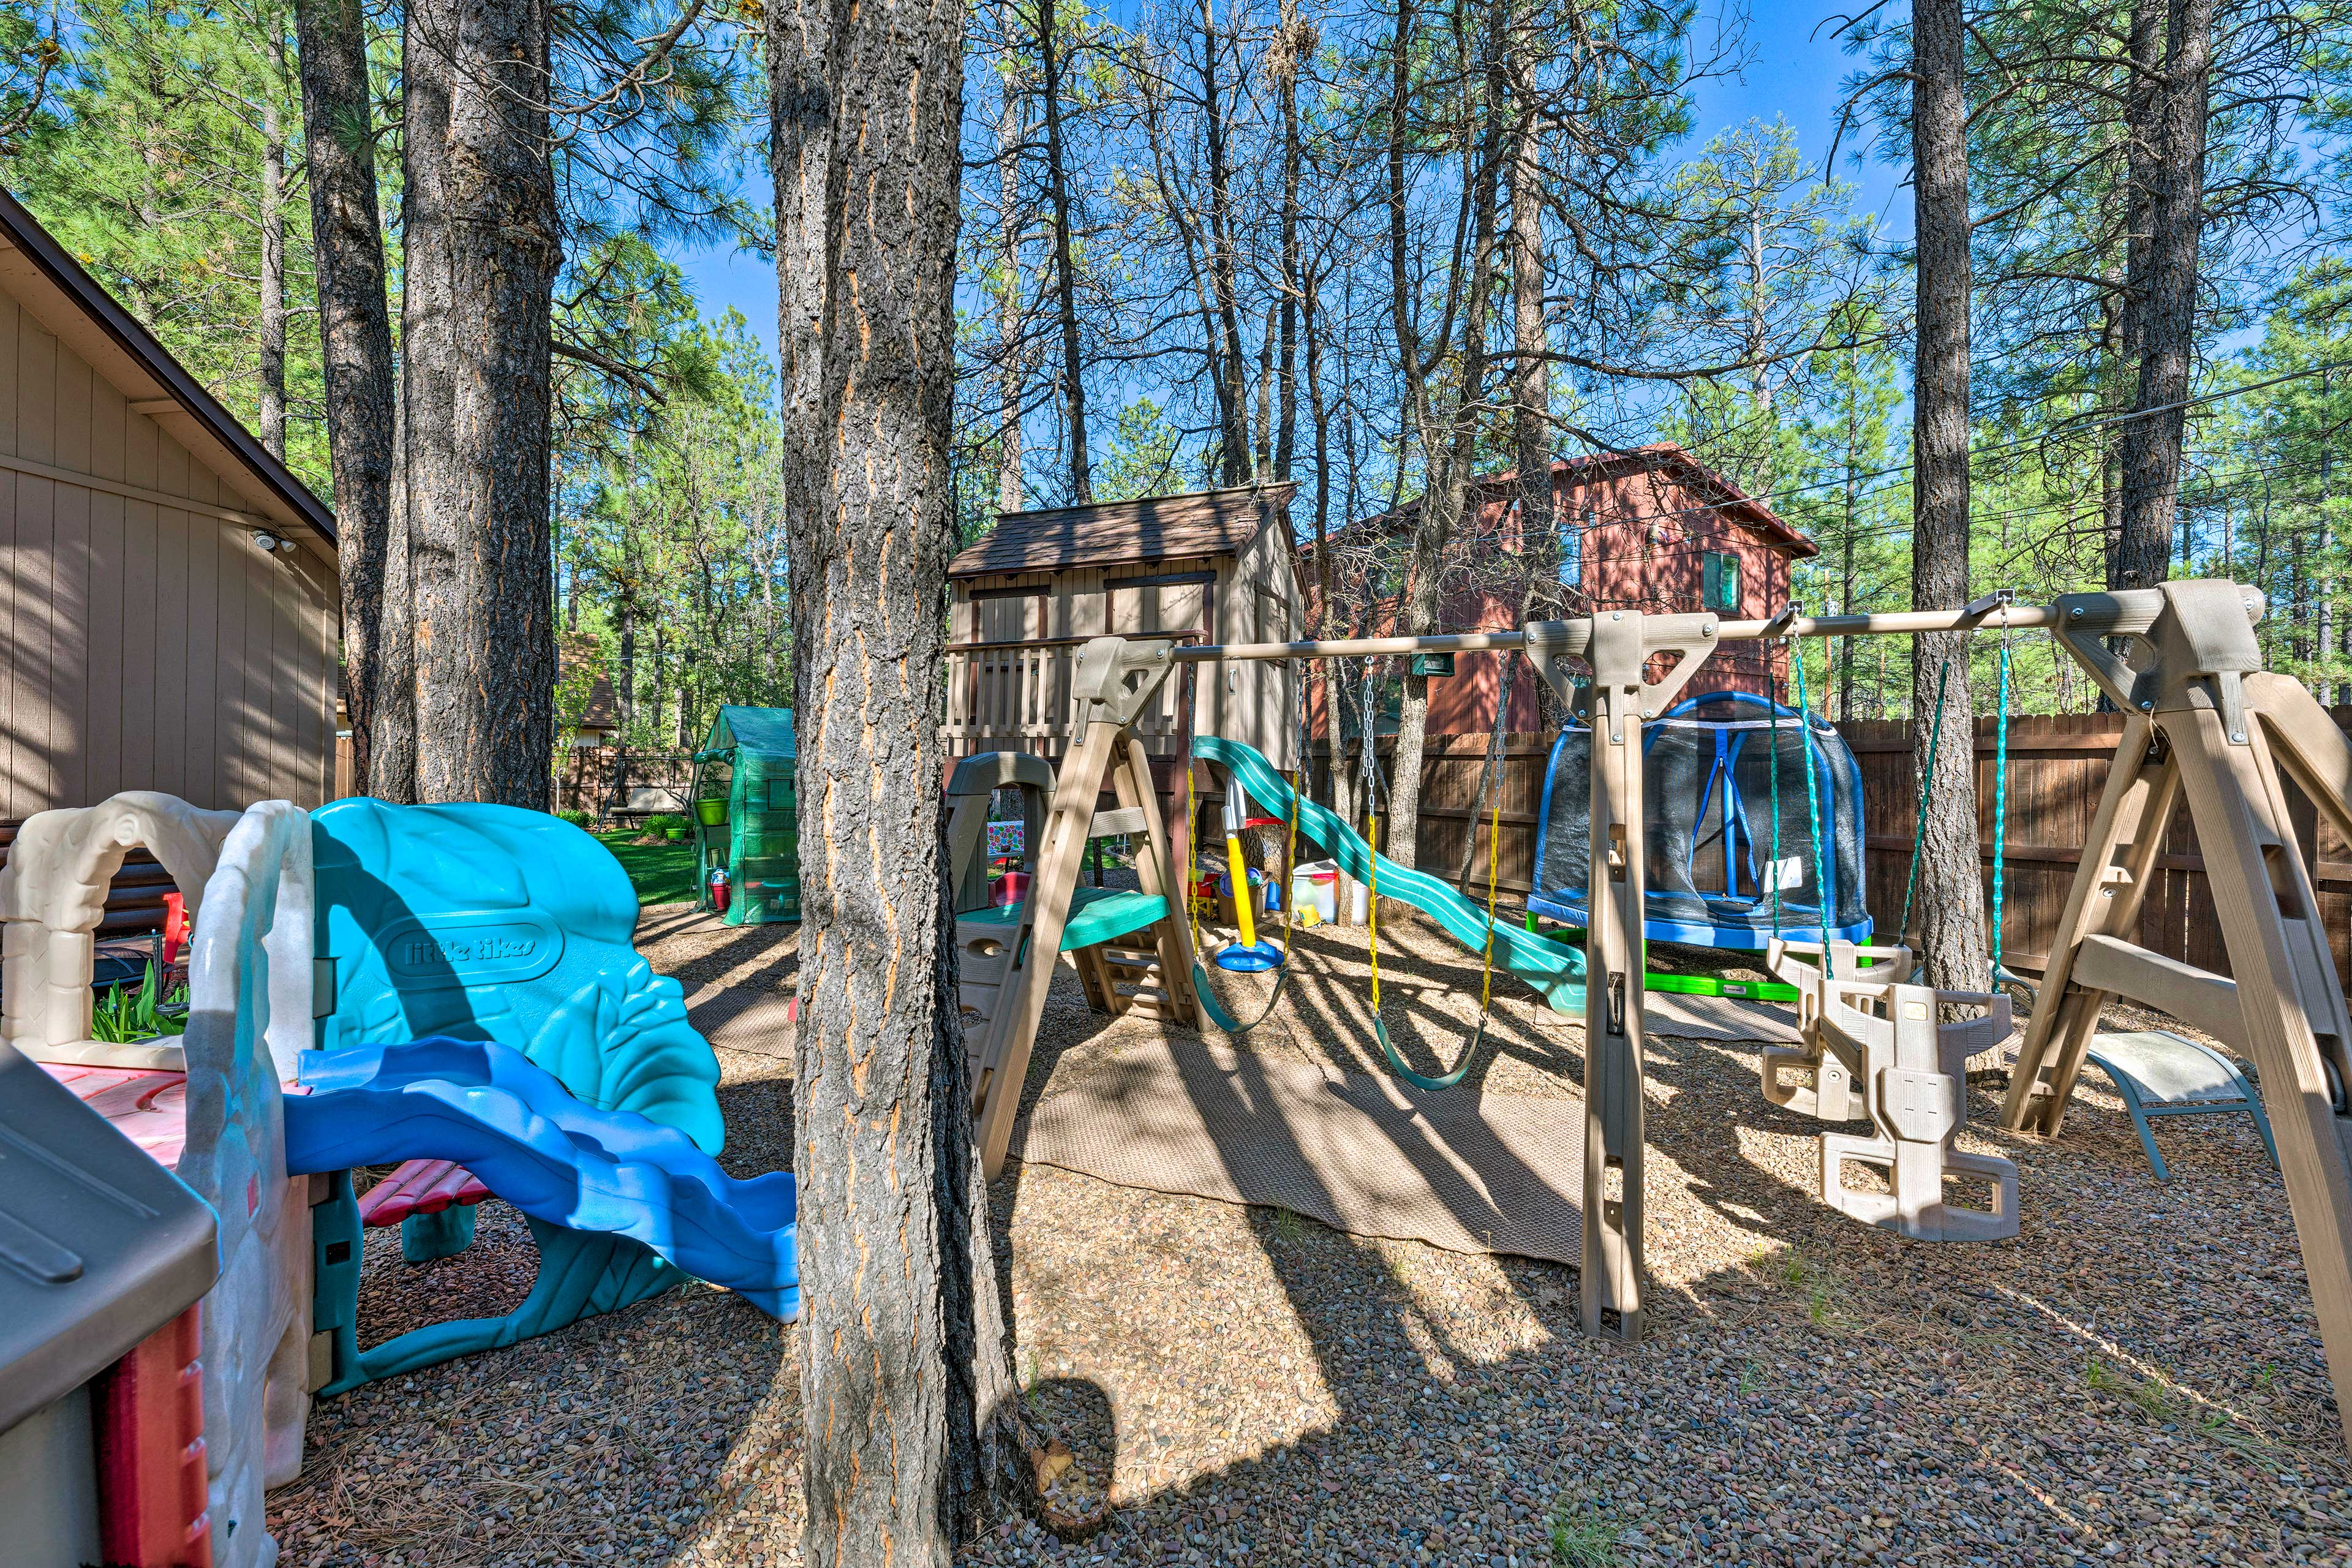 Little ones will delight at the playset.